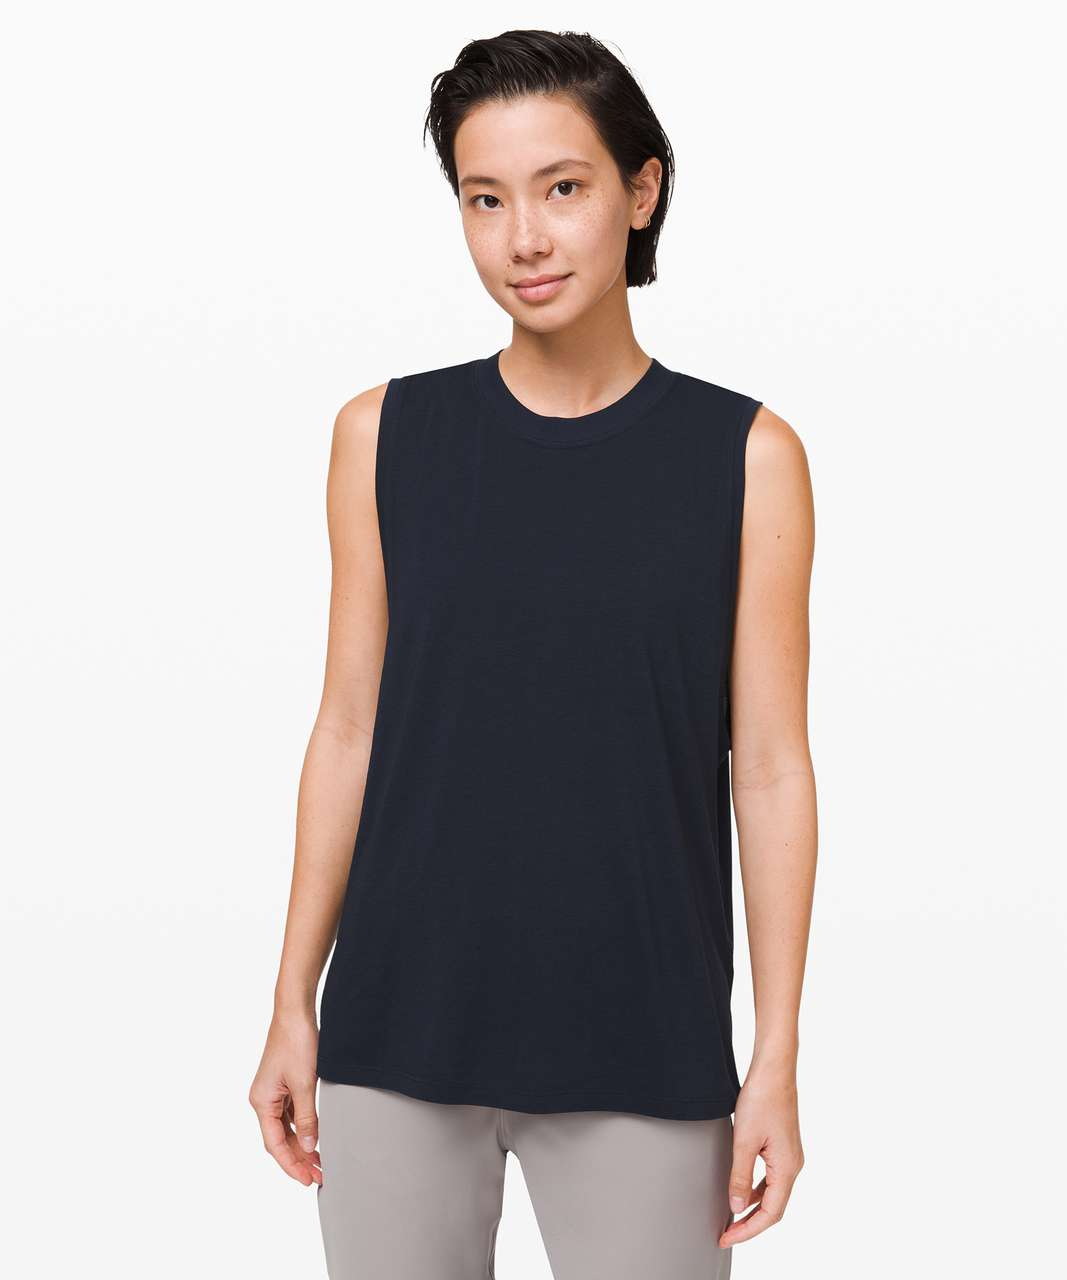 Lululemon All Yours Boyfriend Tank - True Navy